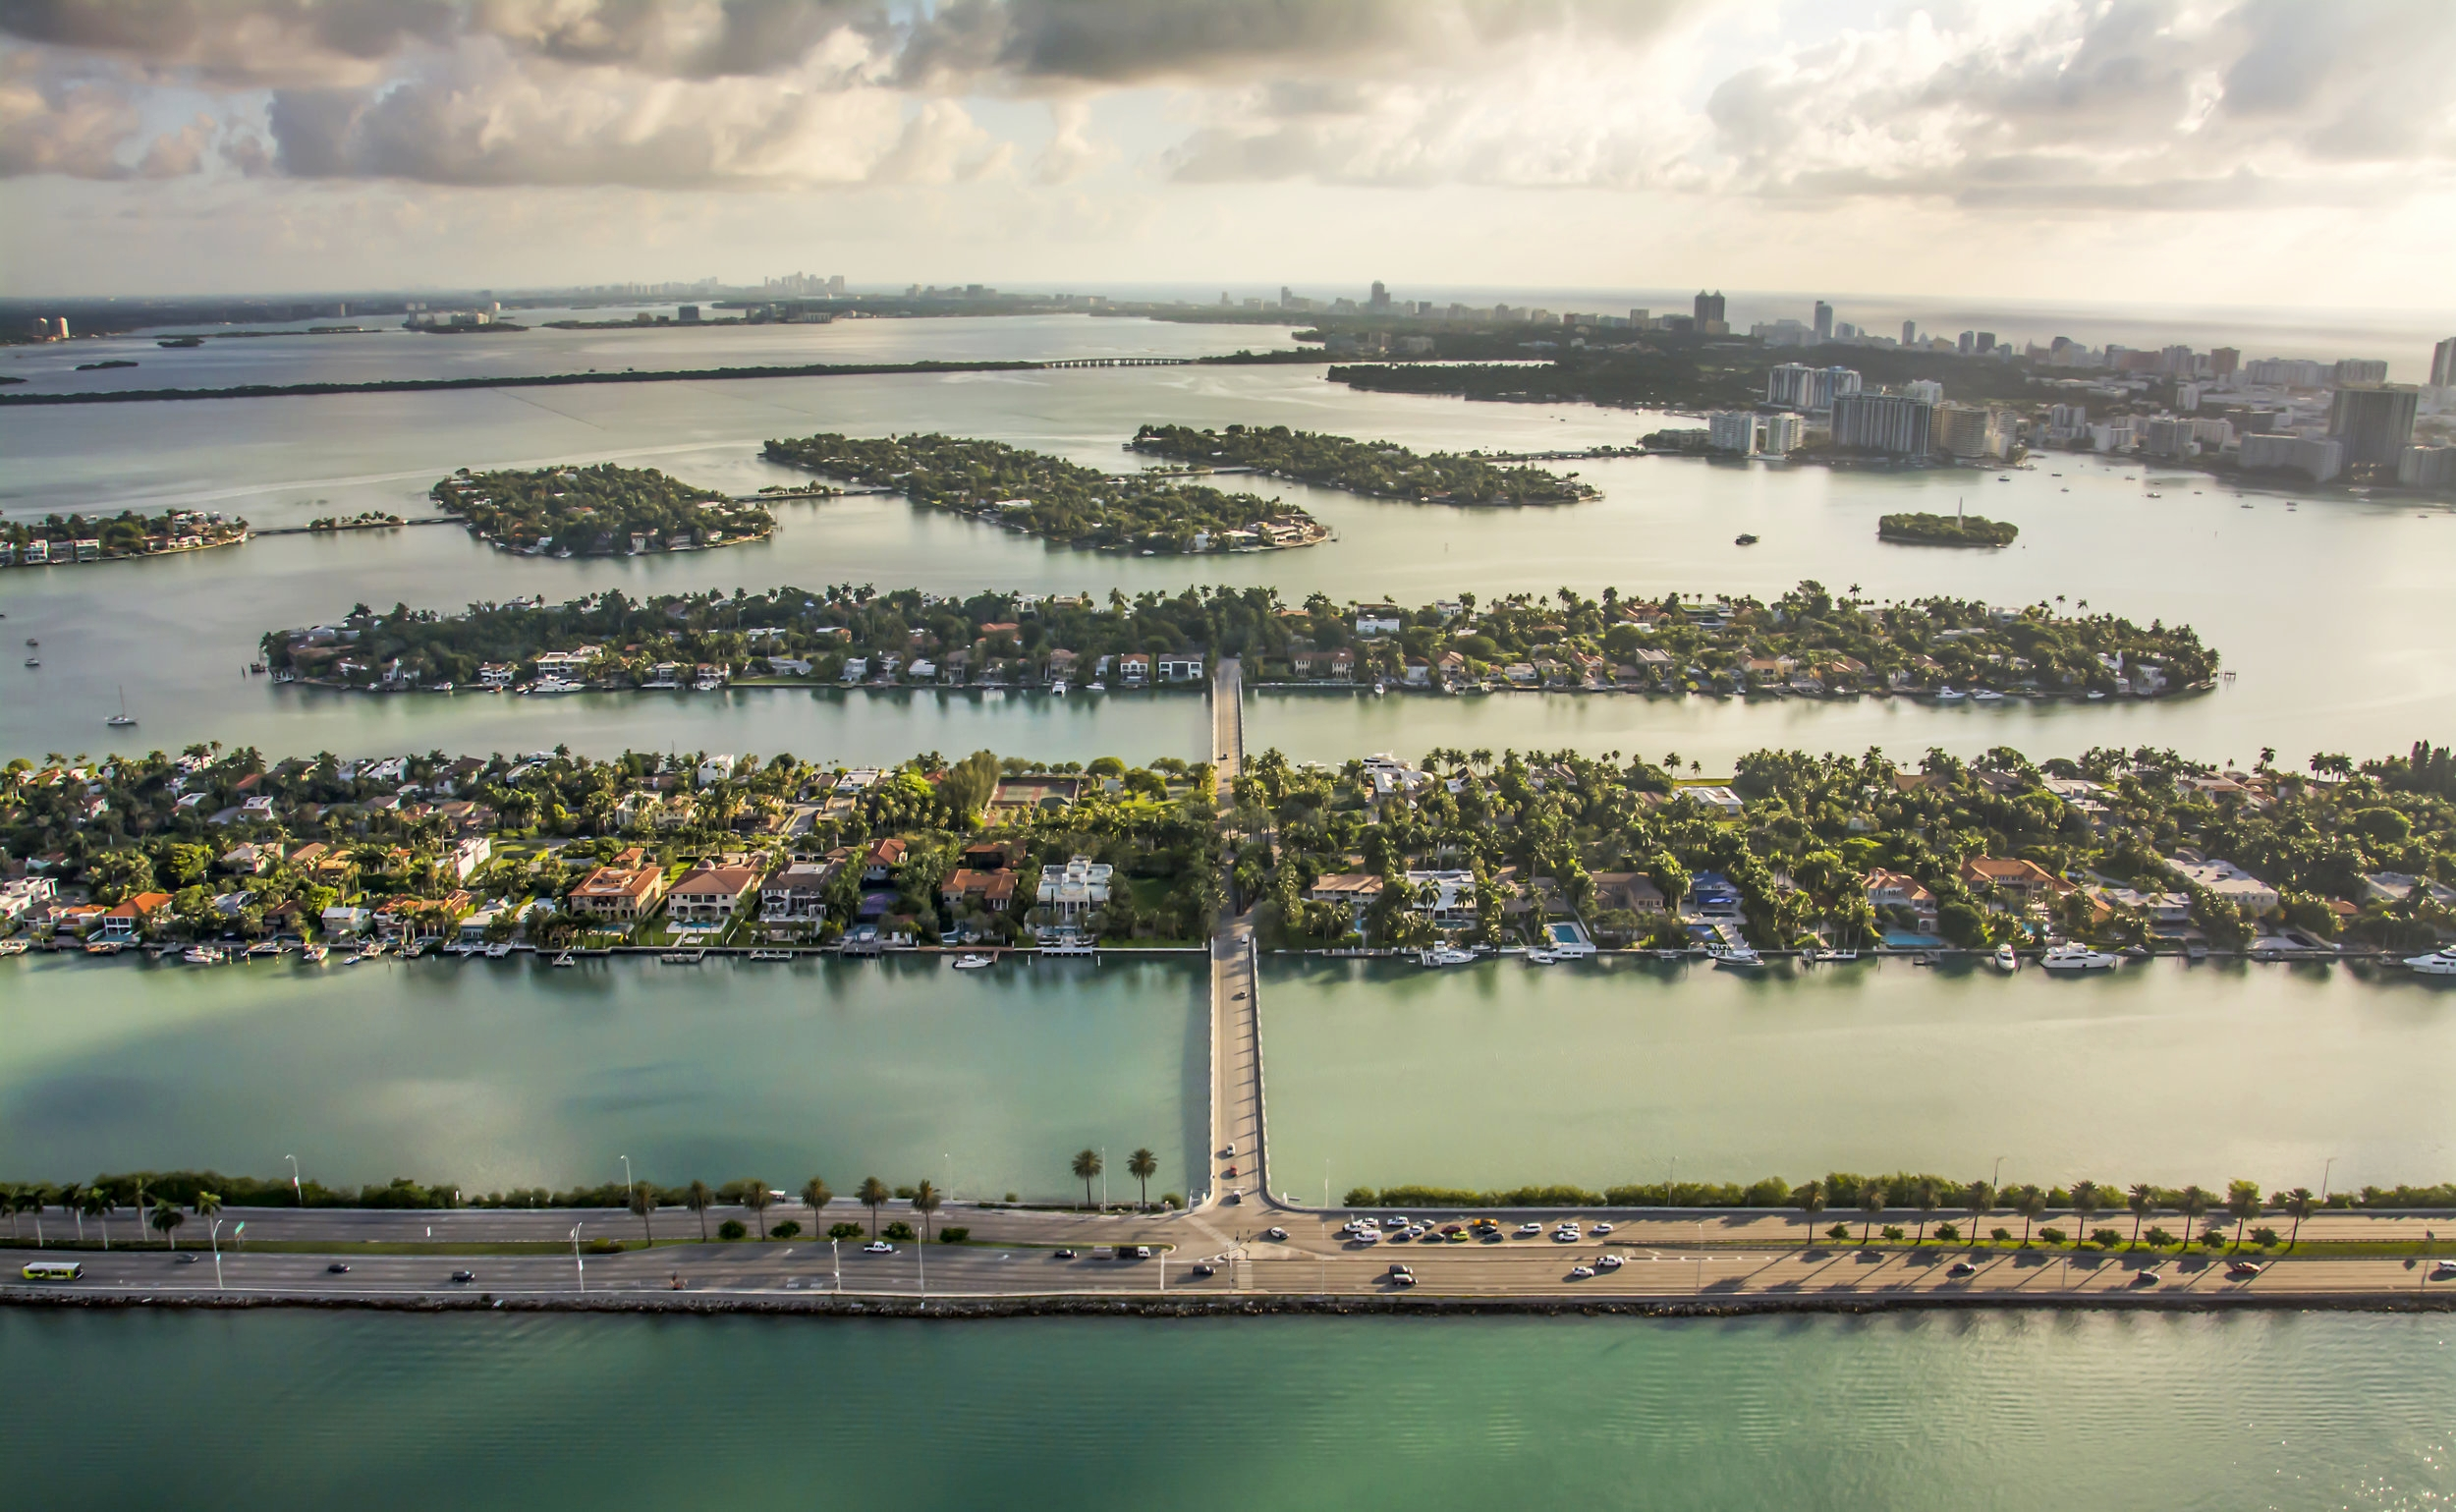 Miami City Guide - Forbes Travel Guide - The Light Record